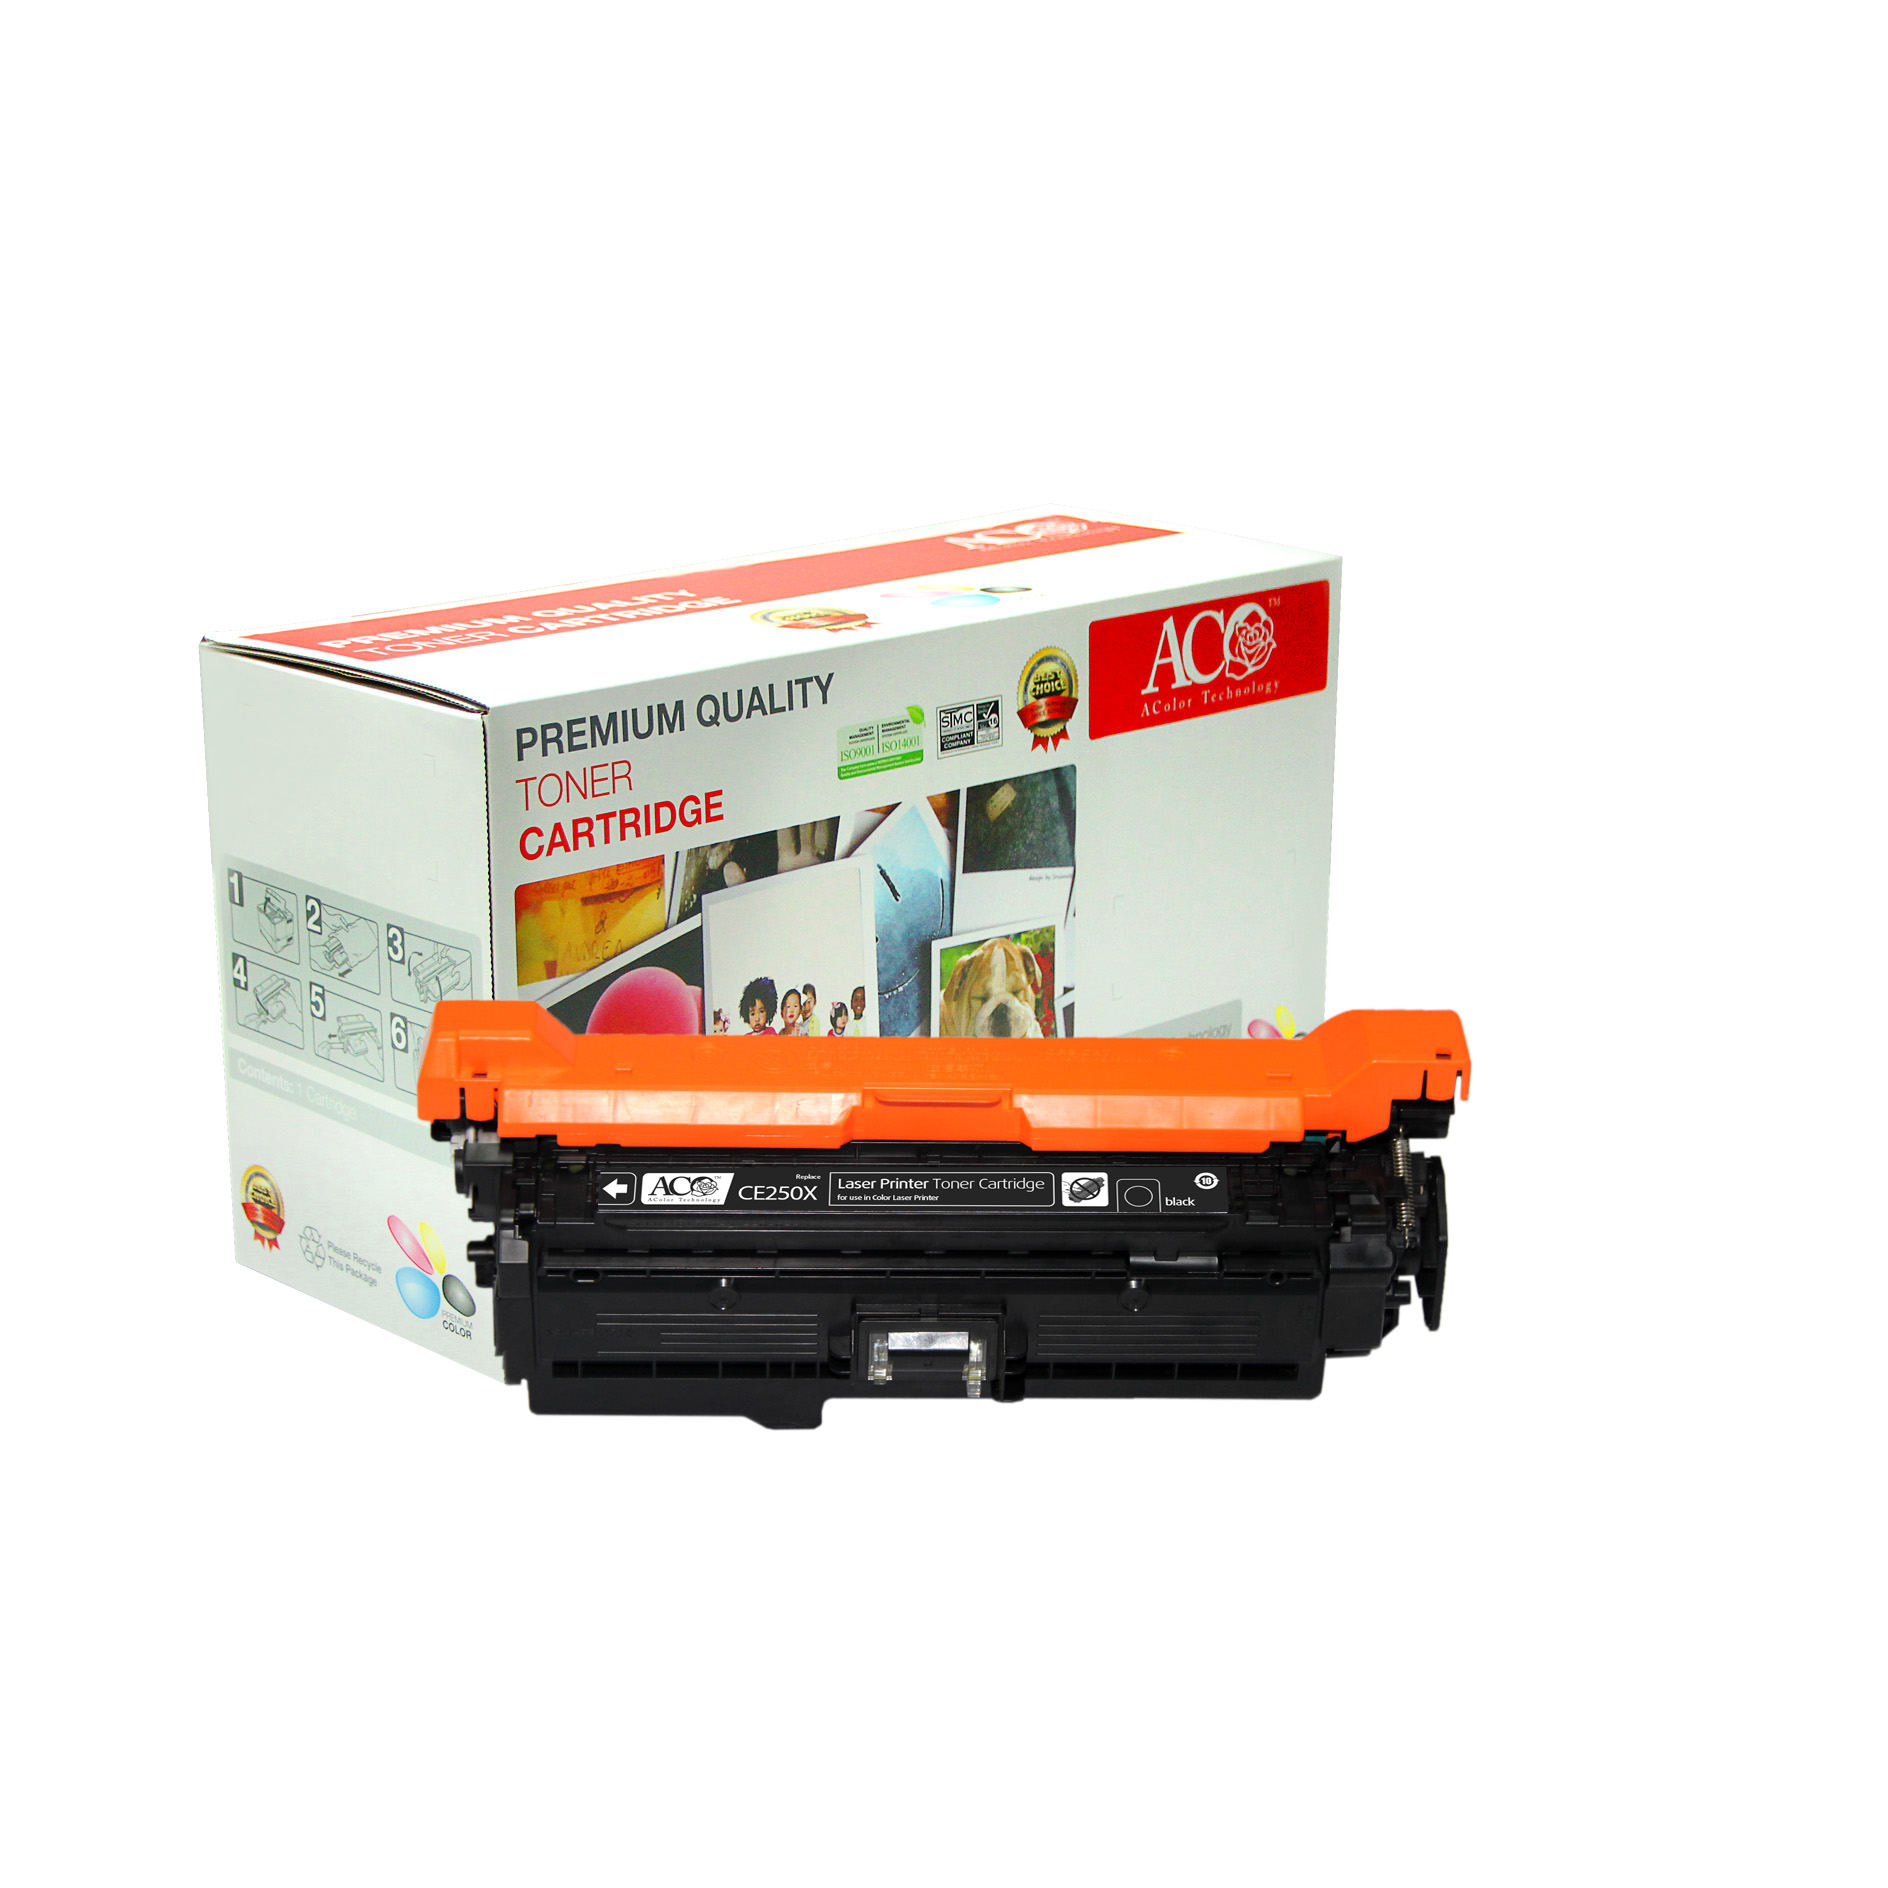 Compatible Color Toner Cartridge for HP CE250X(for HP Color LaserJet CM3530MFP CM3530fsMFP CP3525 CP3525n CP3525dn CP3525x)